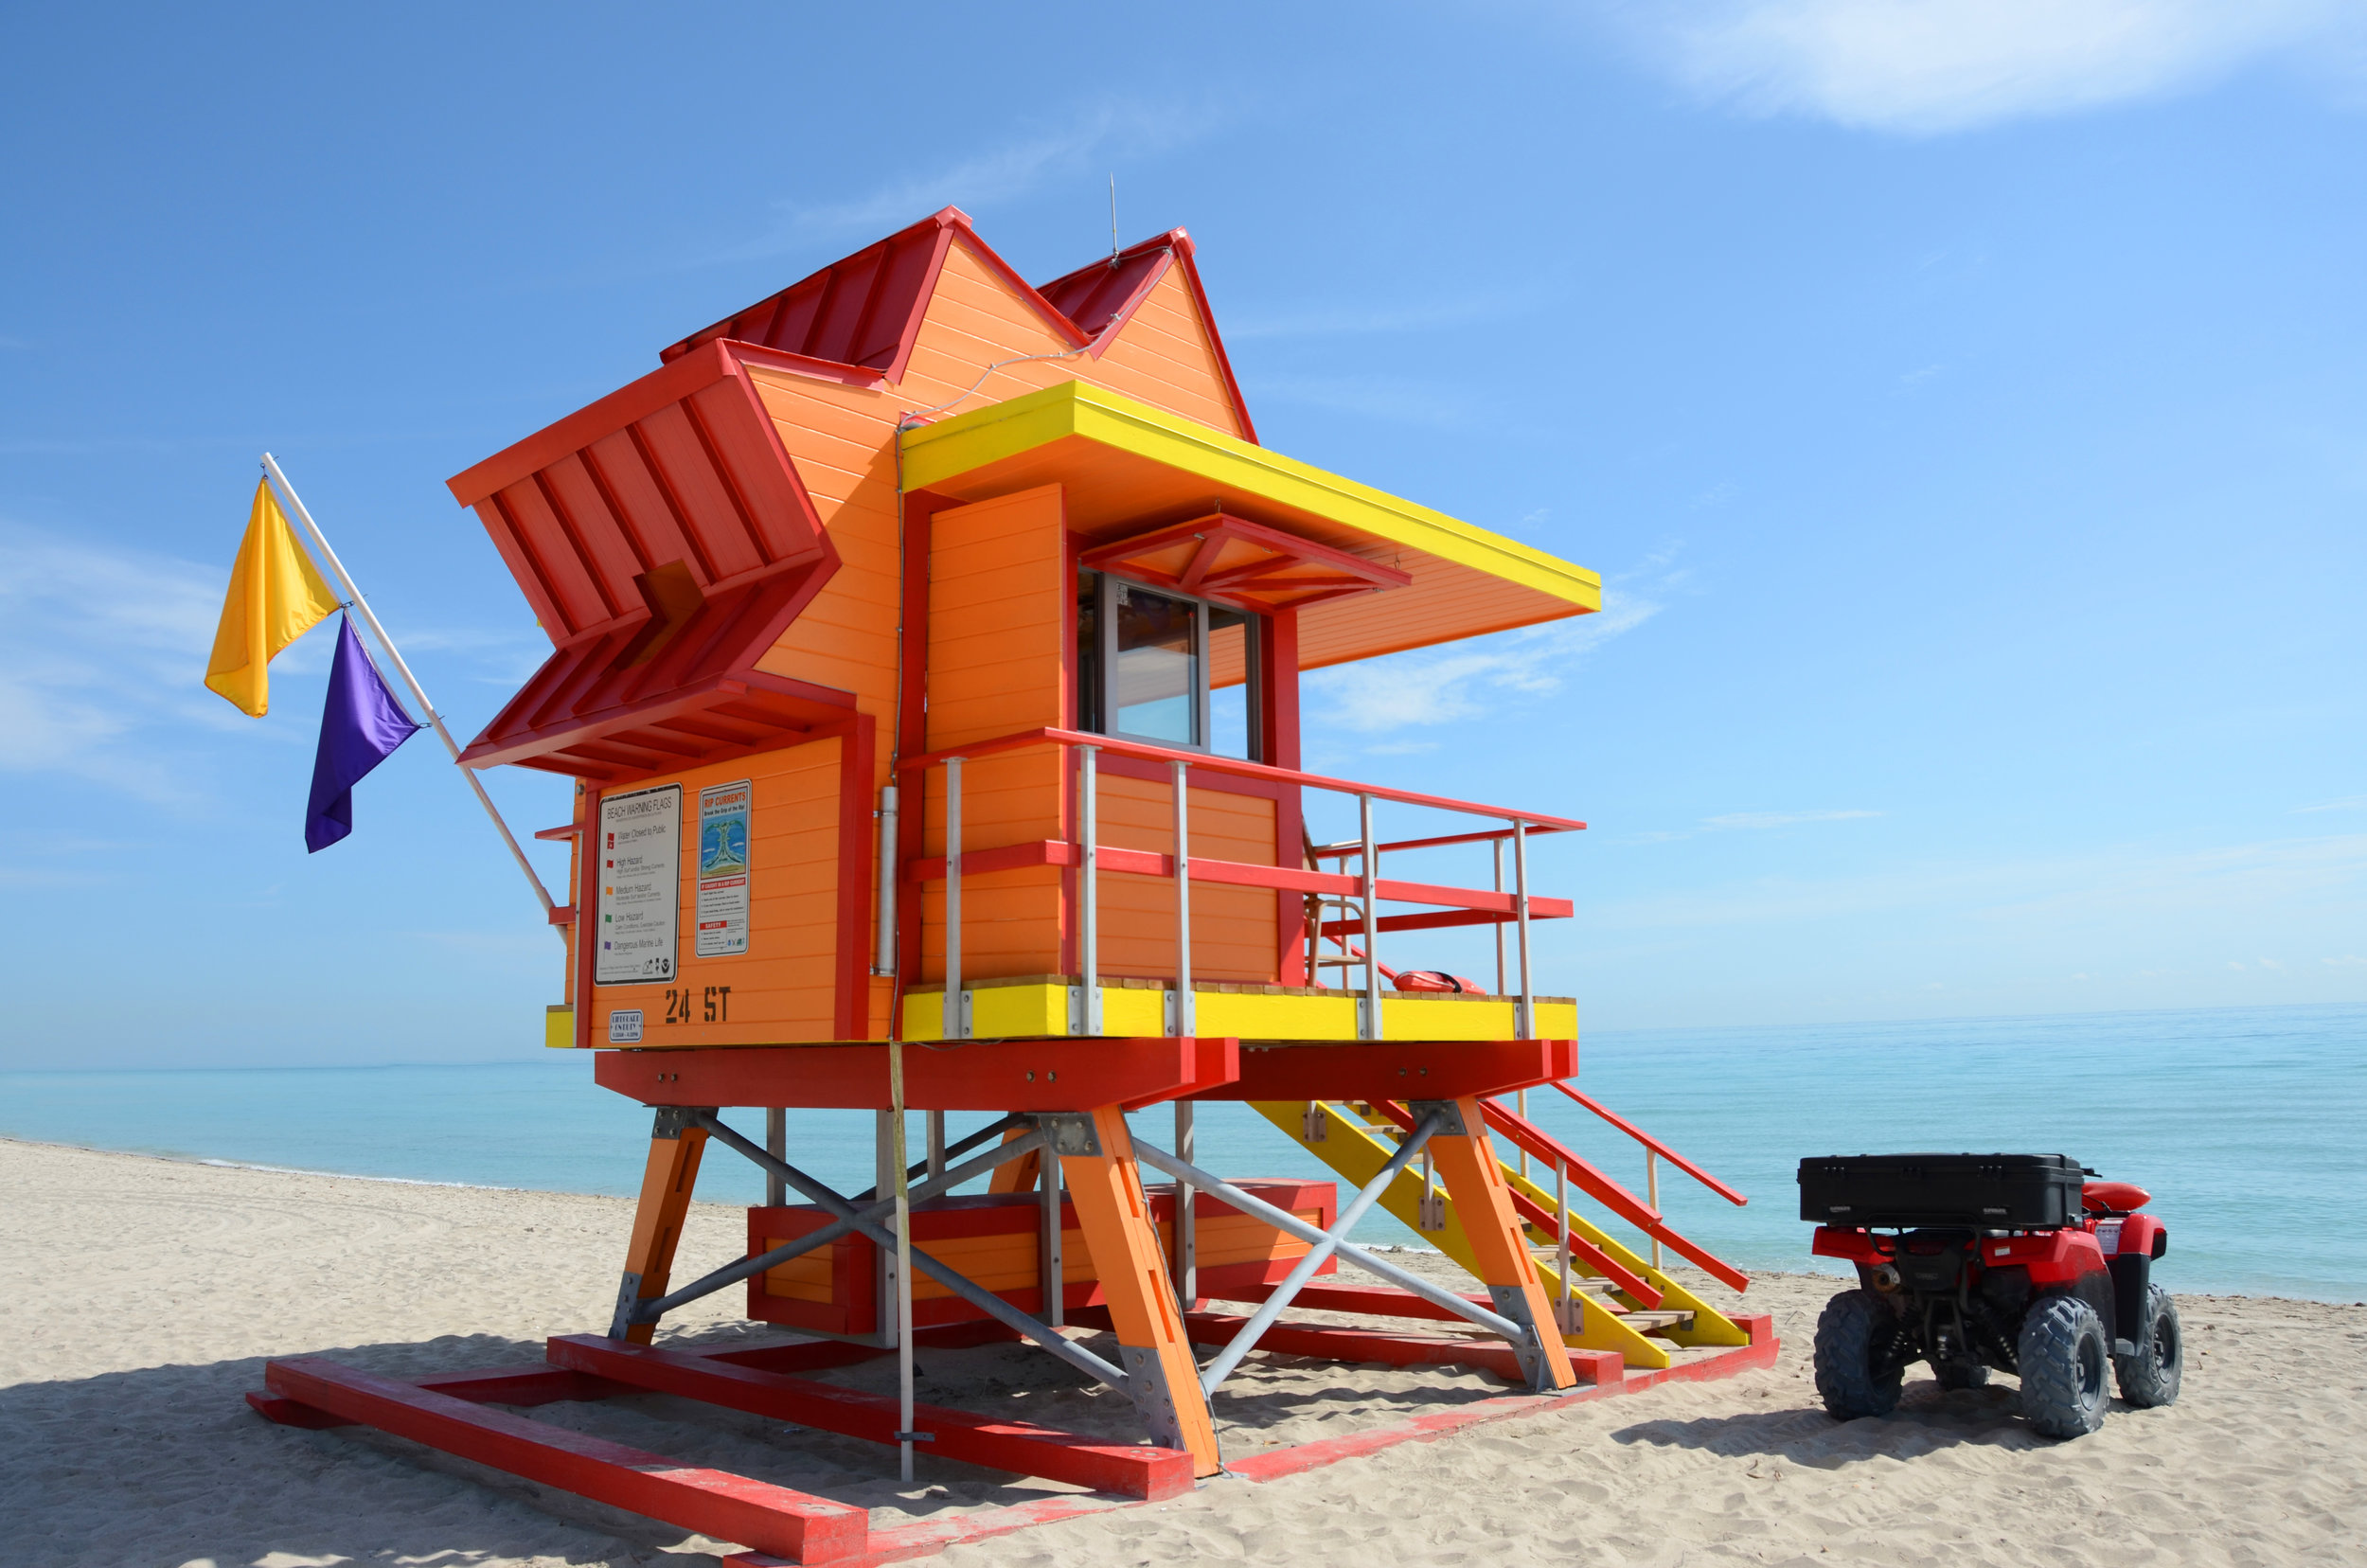 CITY OF MIAMI BEACH LIFEGUARD TOWERS